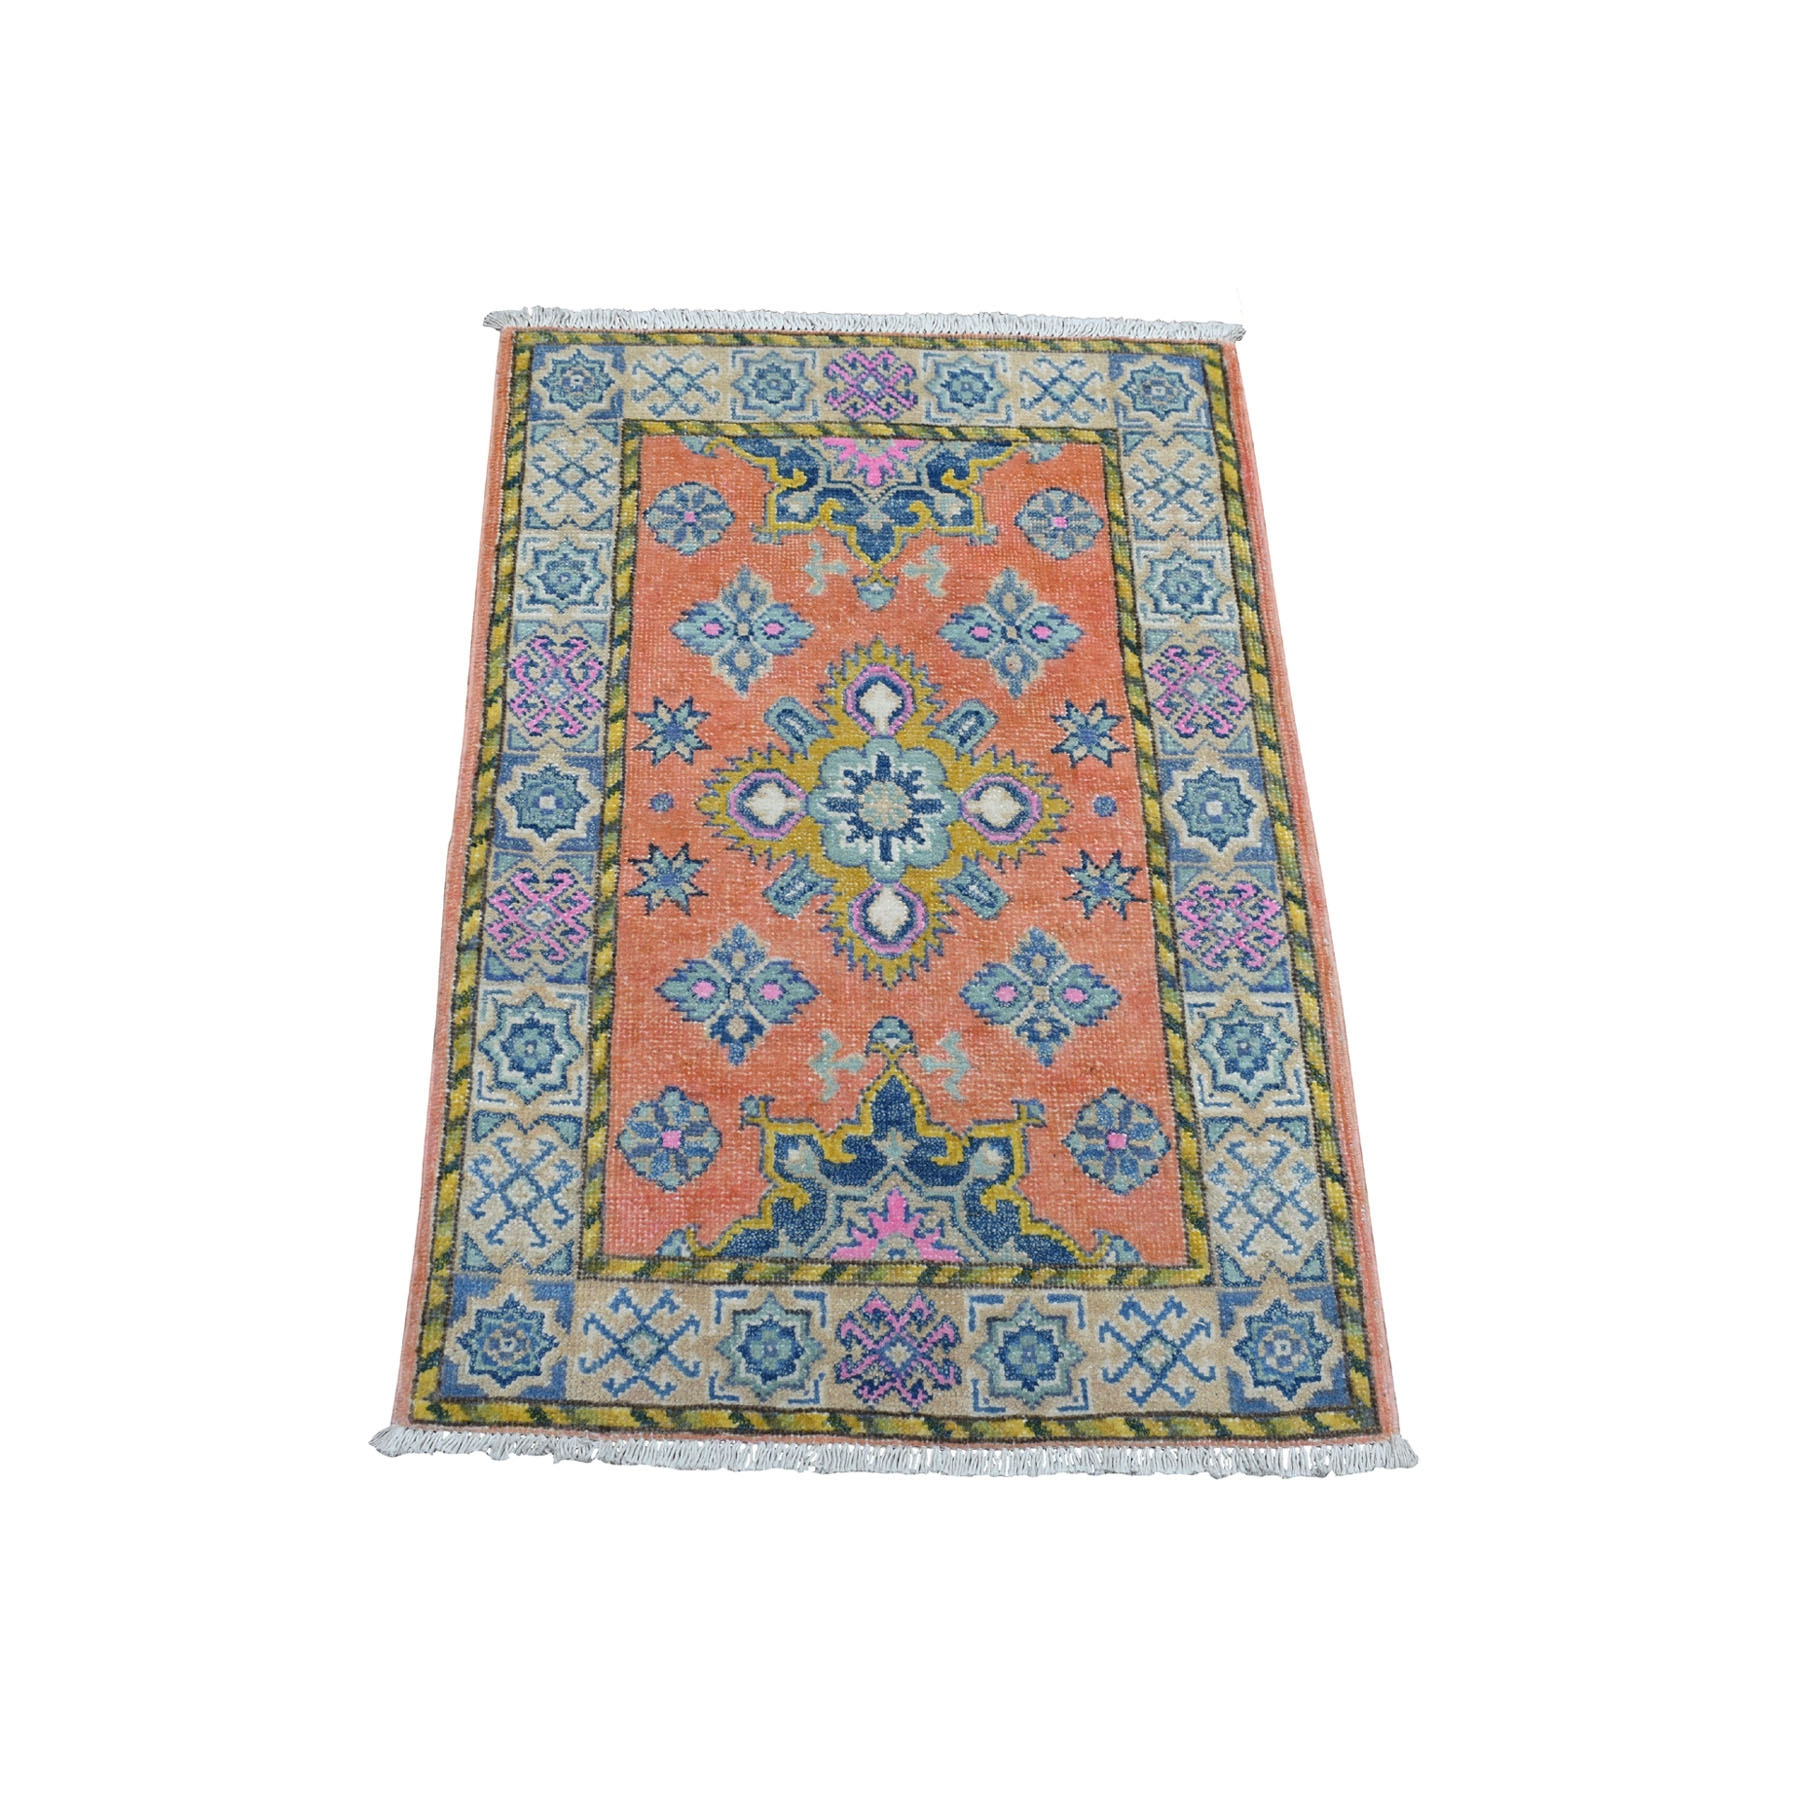 2'x3' Colorful Pink Fusion Kazak Pure Wool Geometric Design Hand Knotted Oriental Rug 54317